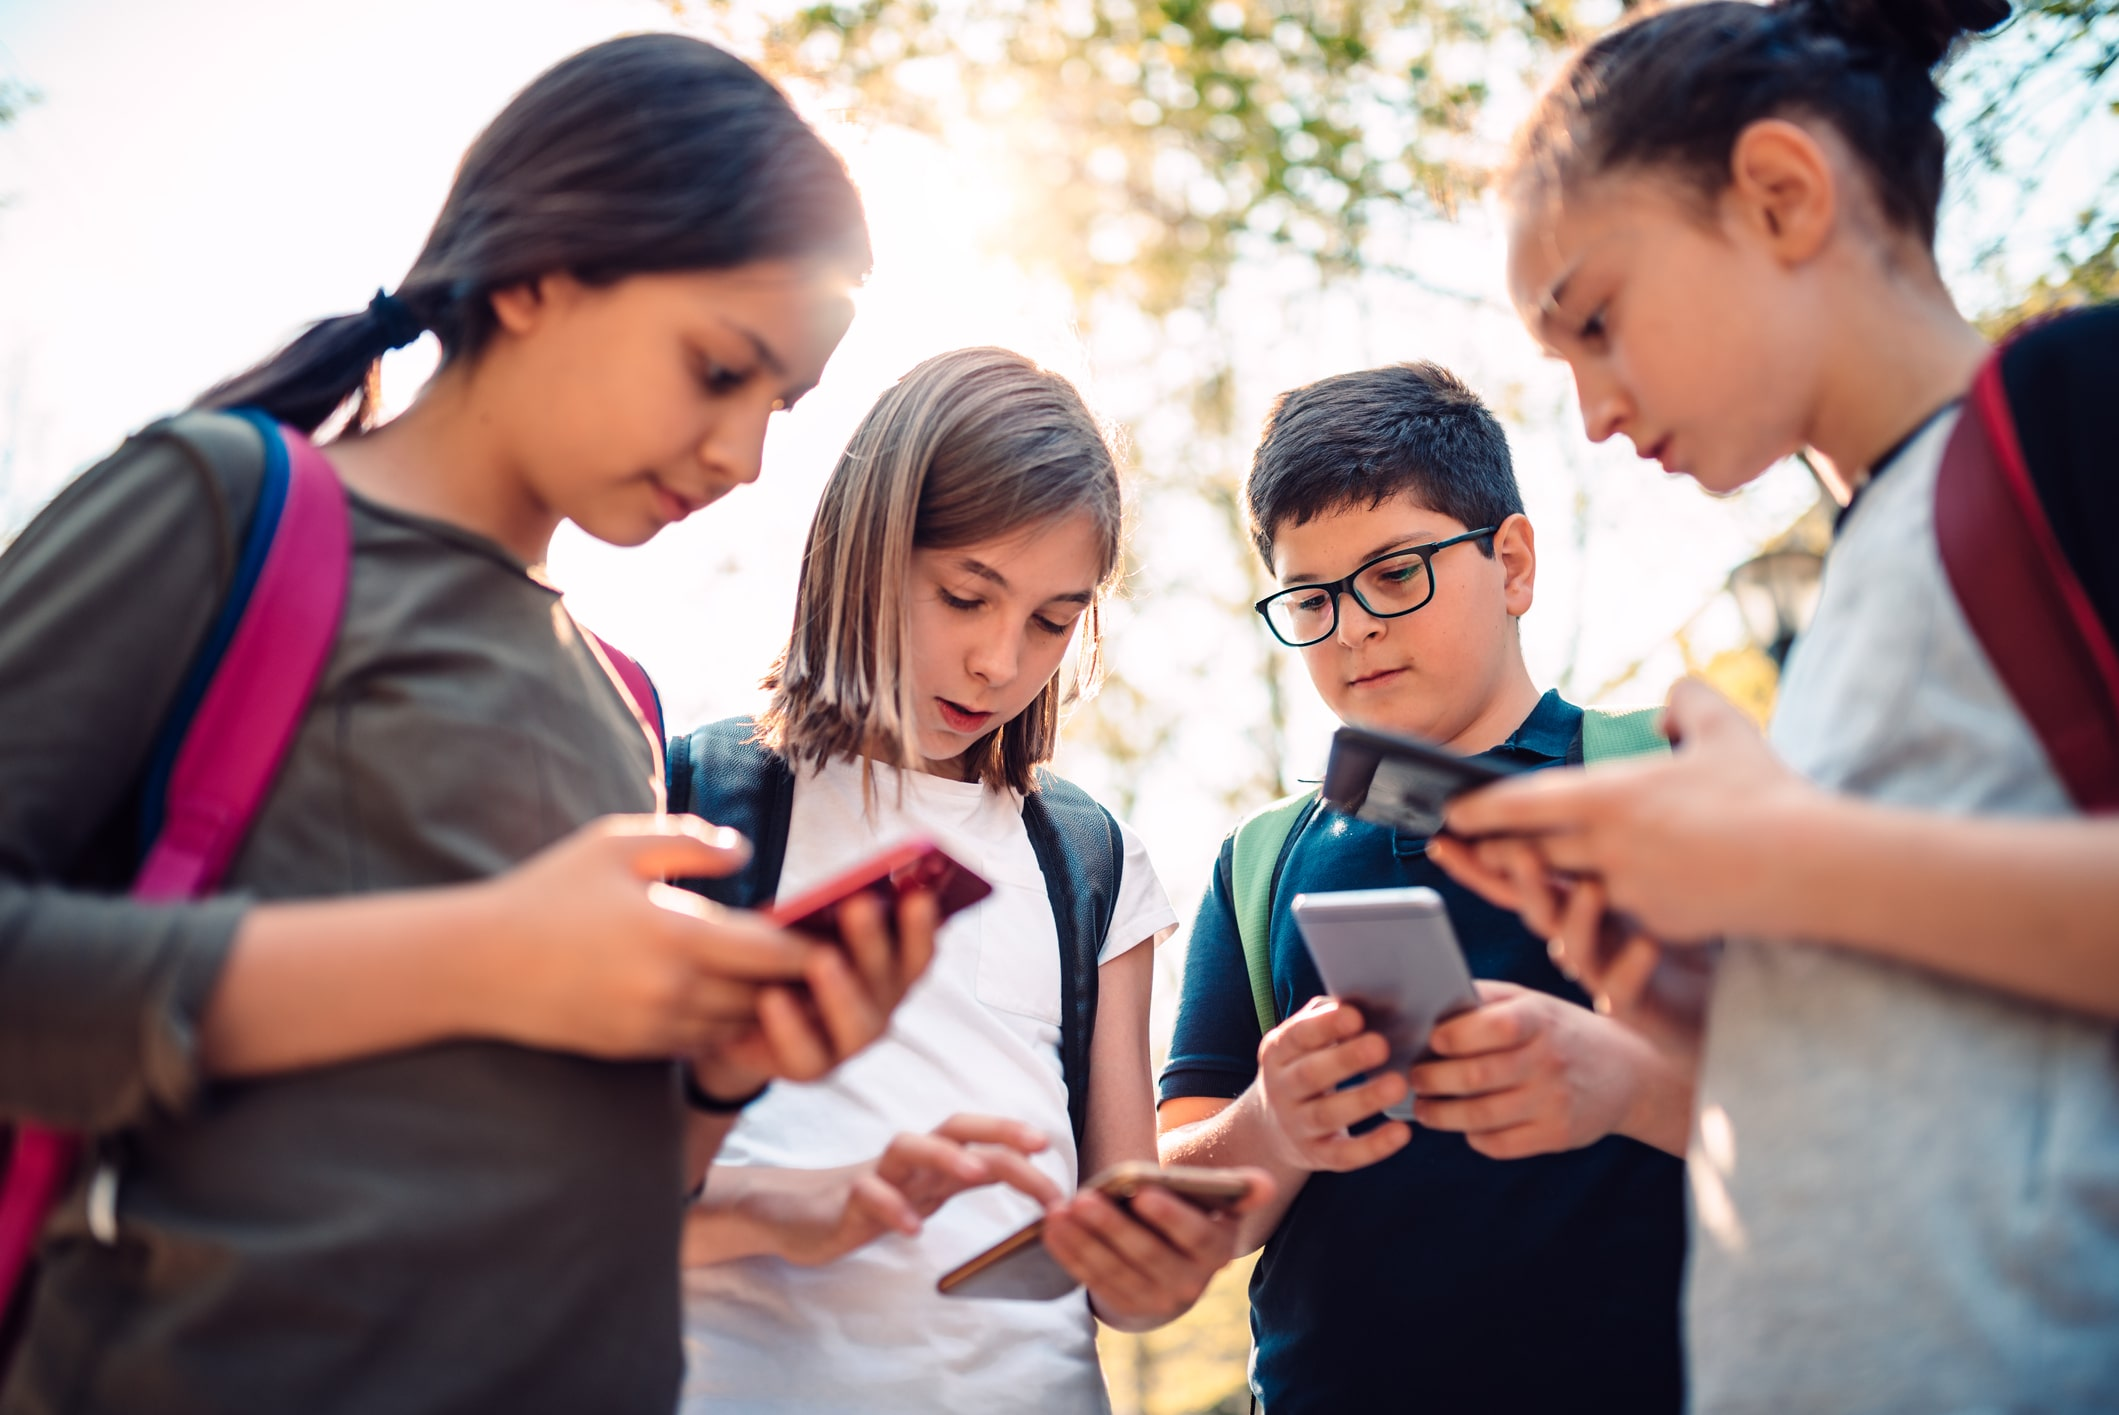 Kids on smartphones; TikTok, Instagram, social media safety